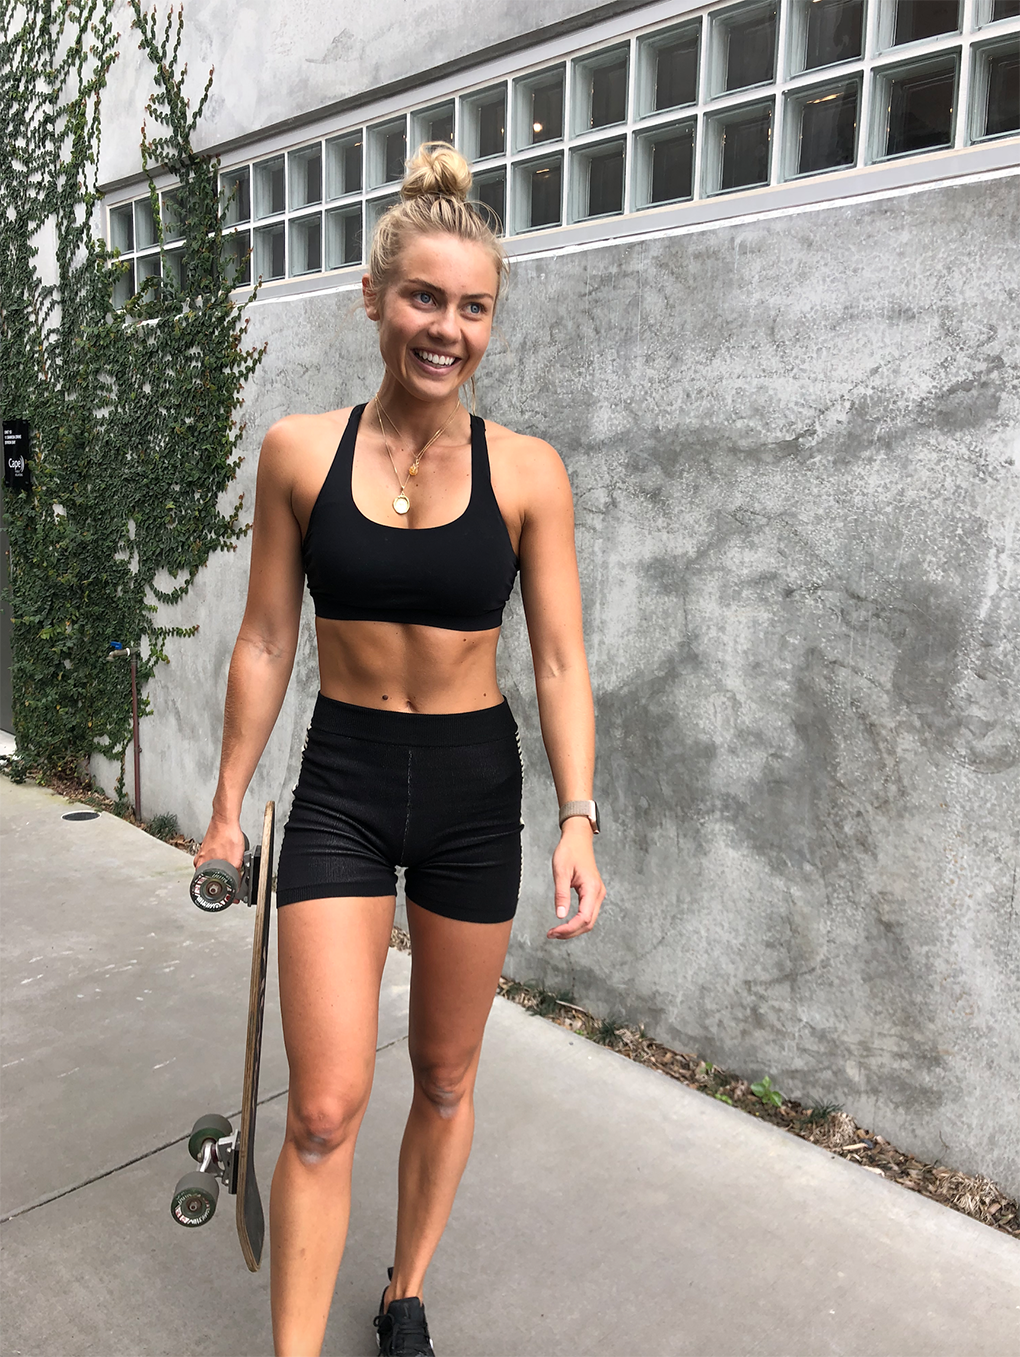 ELYSE KNOWLES SKATEBOARD WORKOUT OCT 2019 4.png